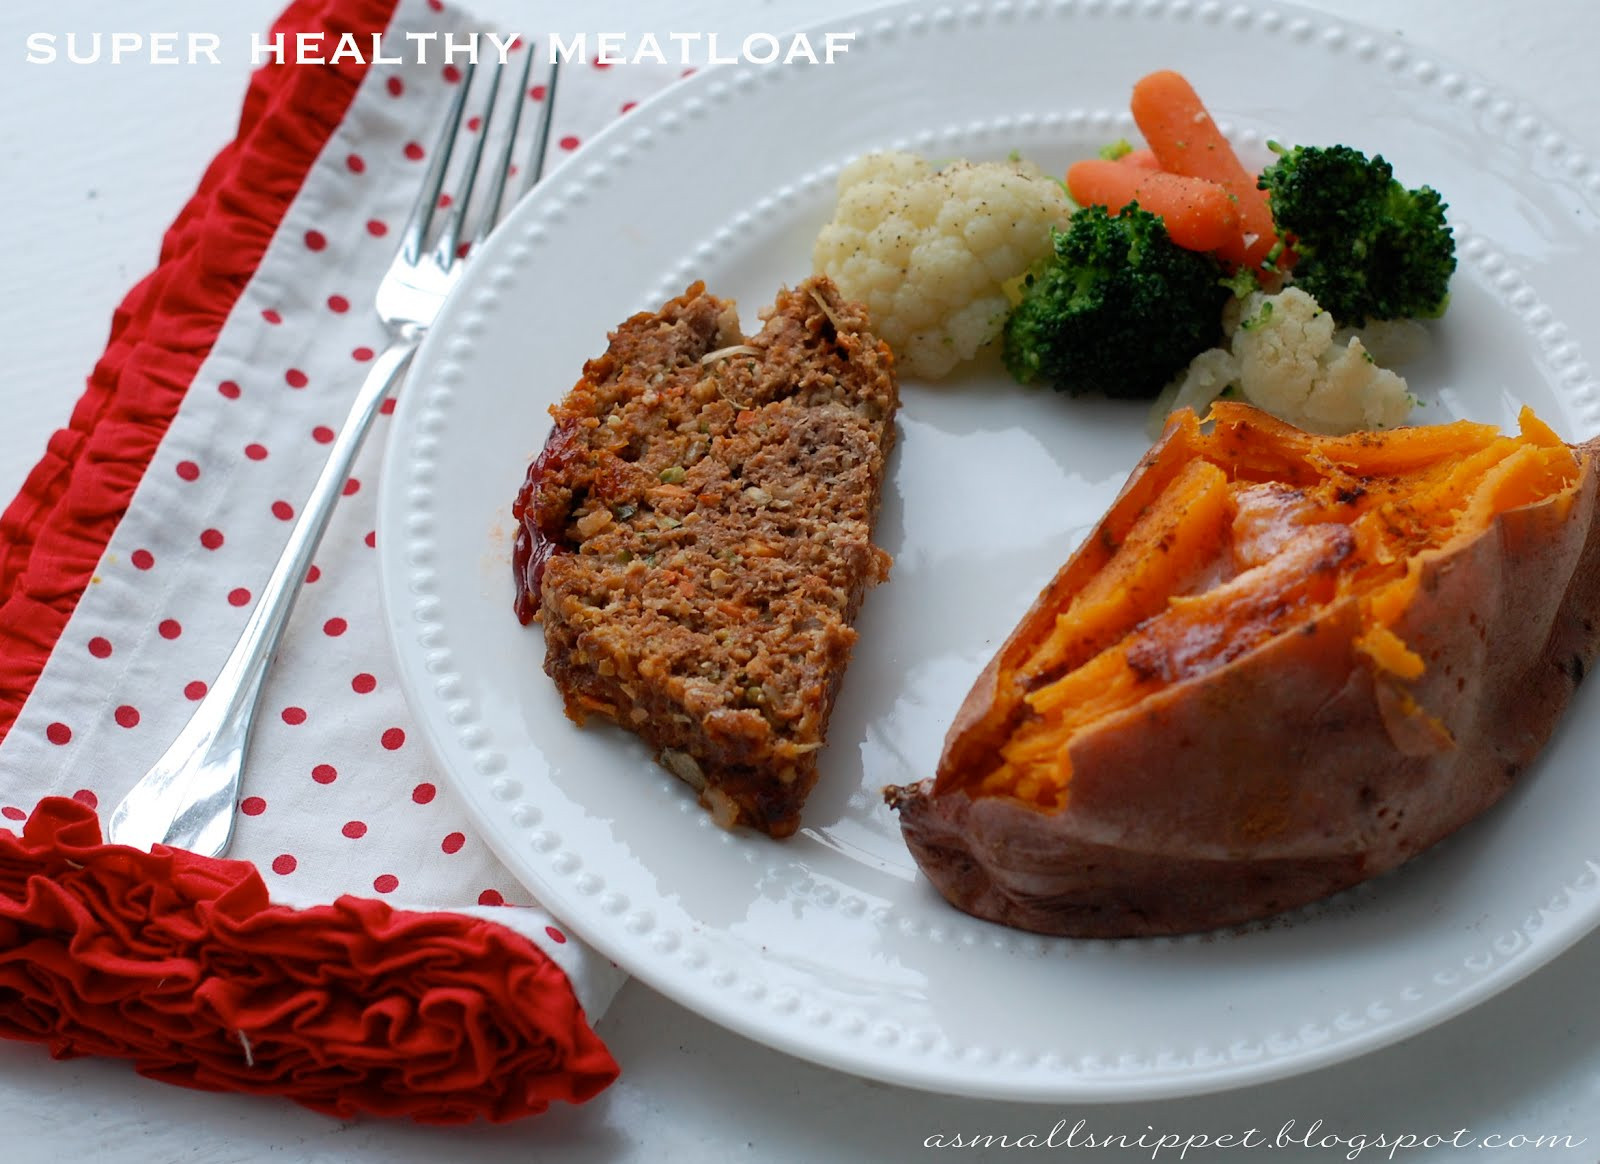 Healthy Meatloaf Recipes  Super Healthy Meatloaf Recipe